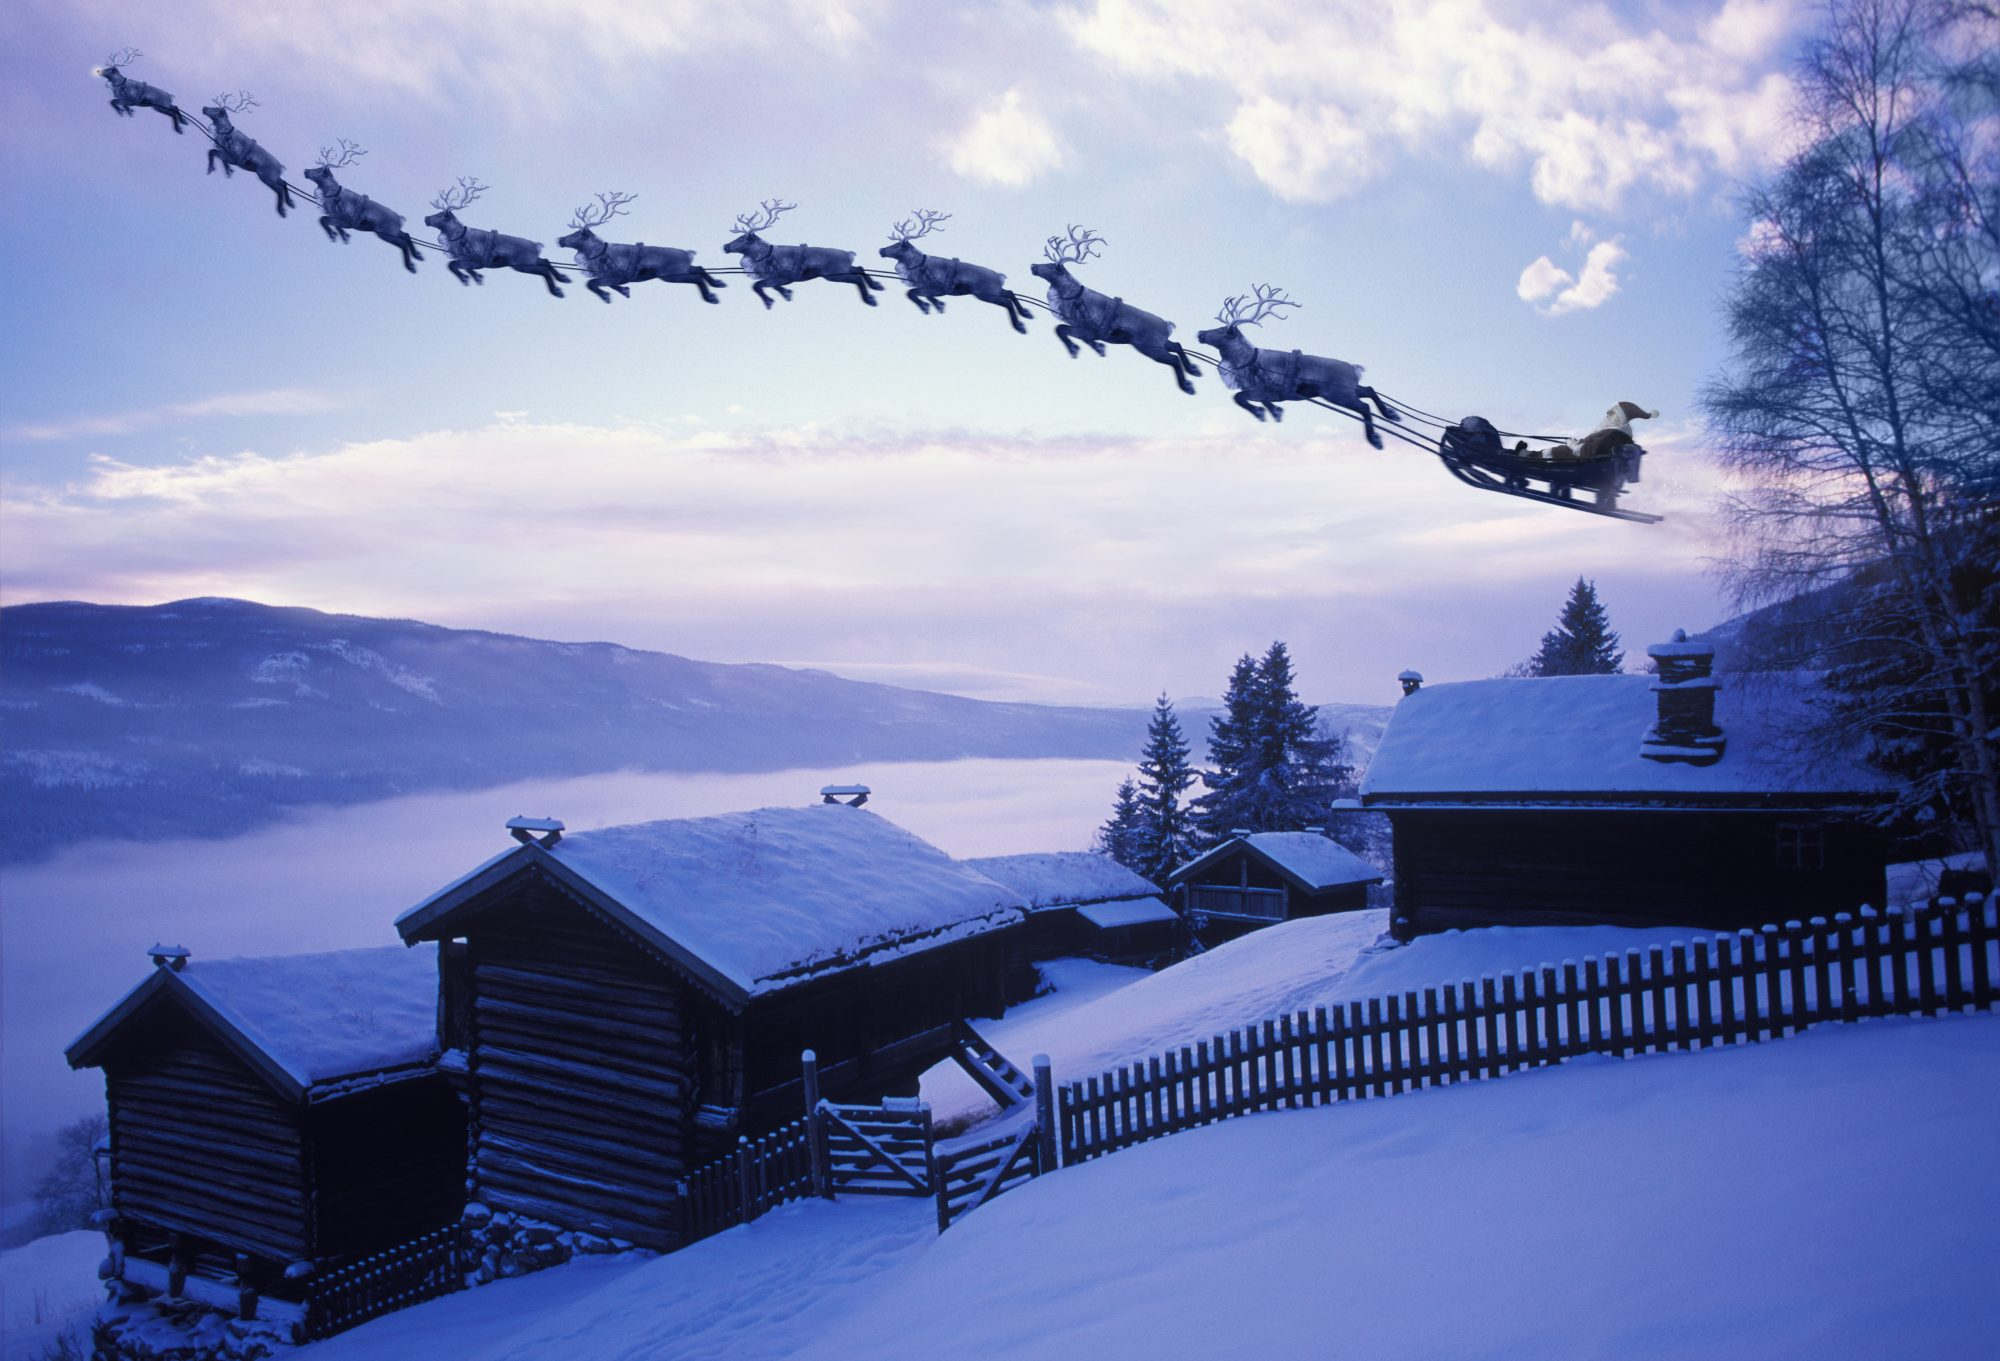 Santa Clause and Reindeer Flying